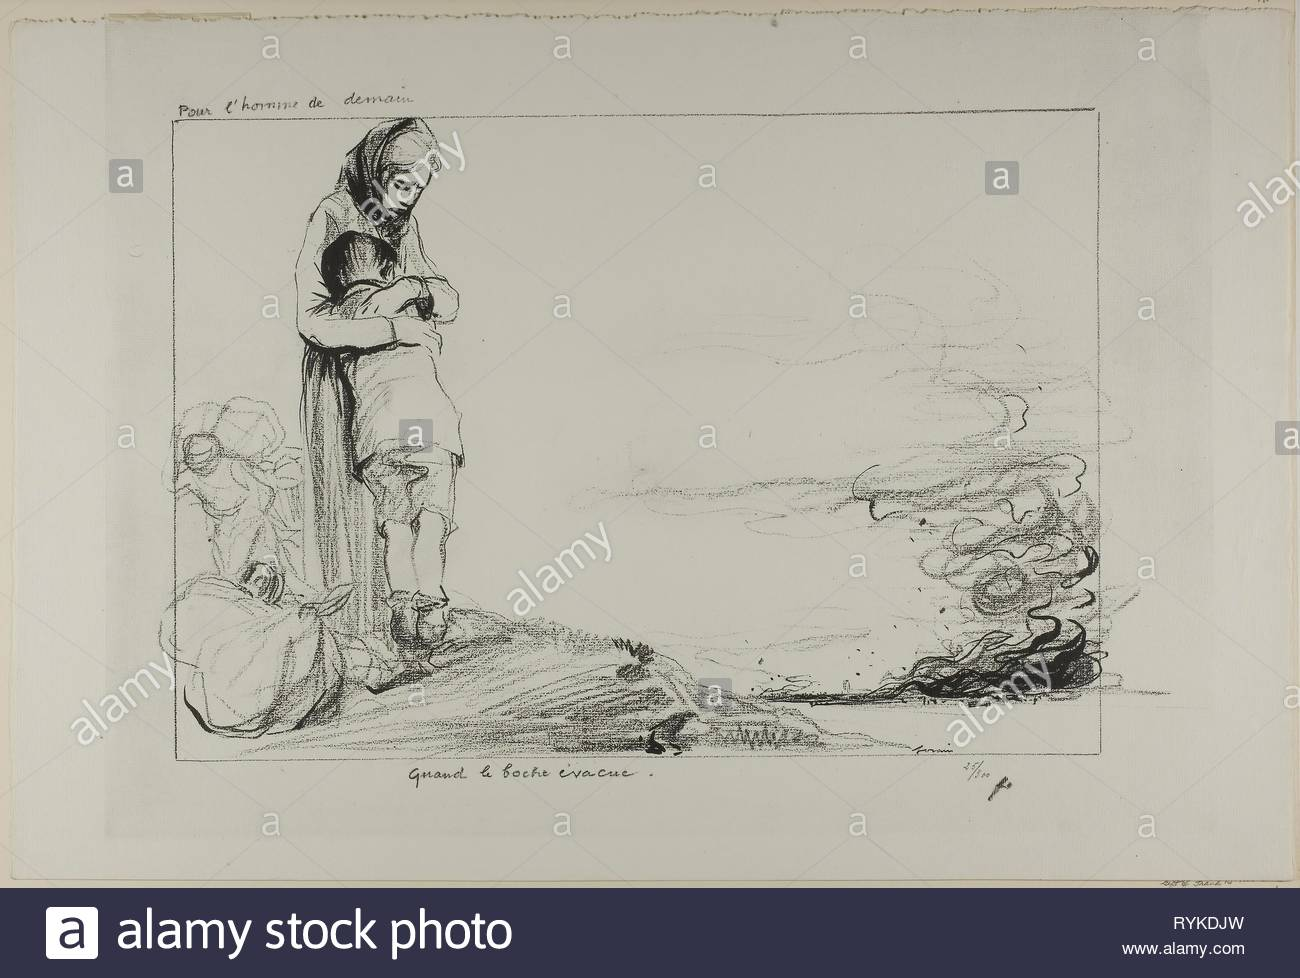 No. 145: Pour l'homme de demain. - Quand le boche évacue. Jean Louis Forain; French, 1852-1931. Date: 1918. Dimensions: 290 × 460 mm (image); 377 × 570 mm (sheet). Line block taken from a drawing on ivory wove paper. Origin: France. Museum: The Chicago Art Institute, Chicago, USA. - Stock Image